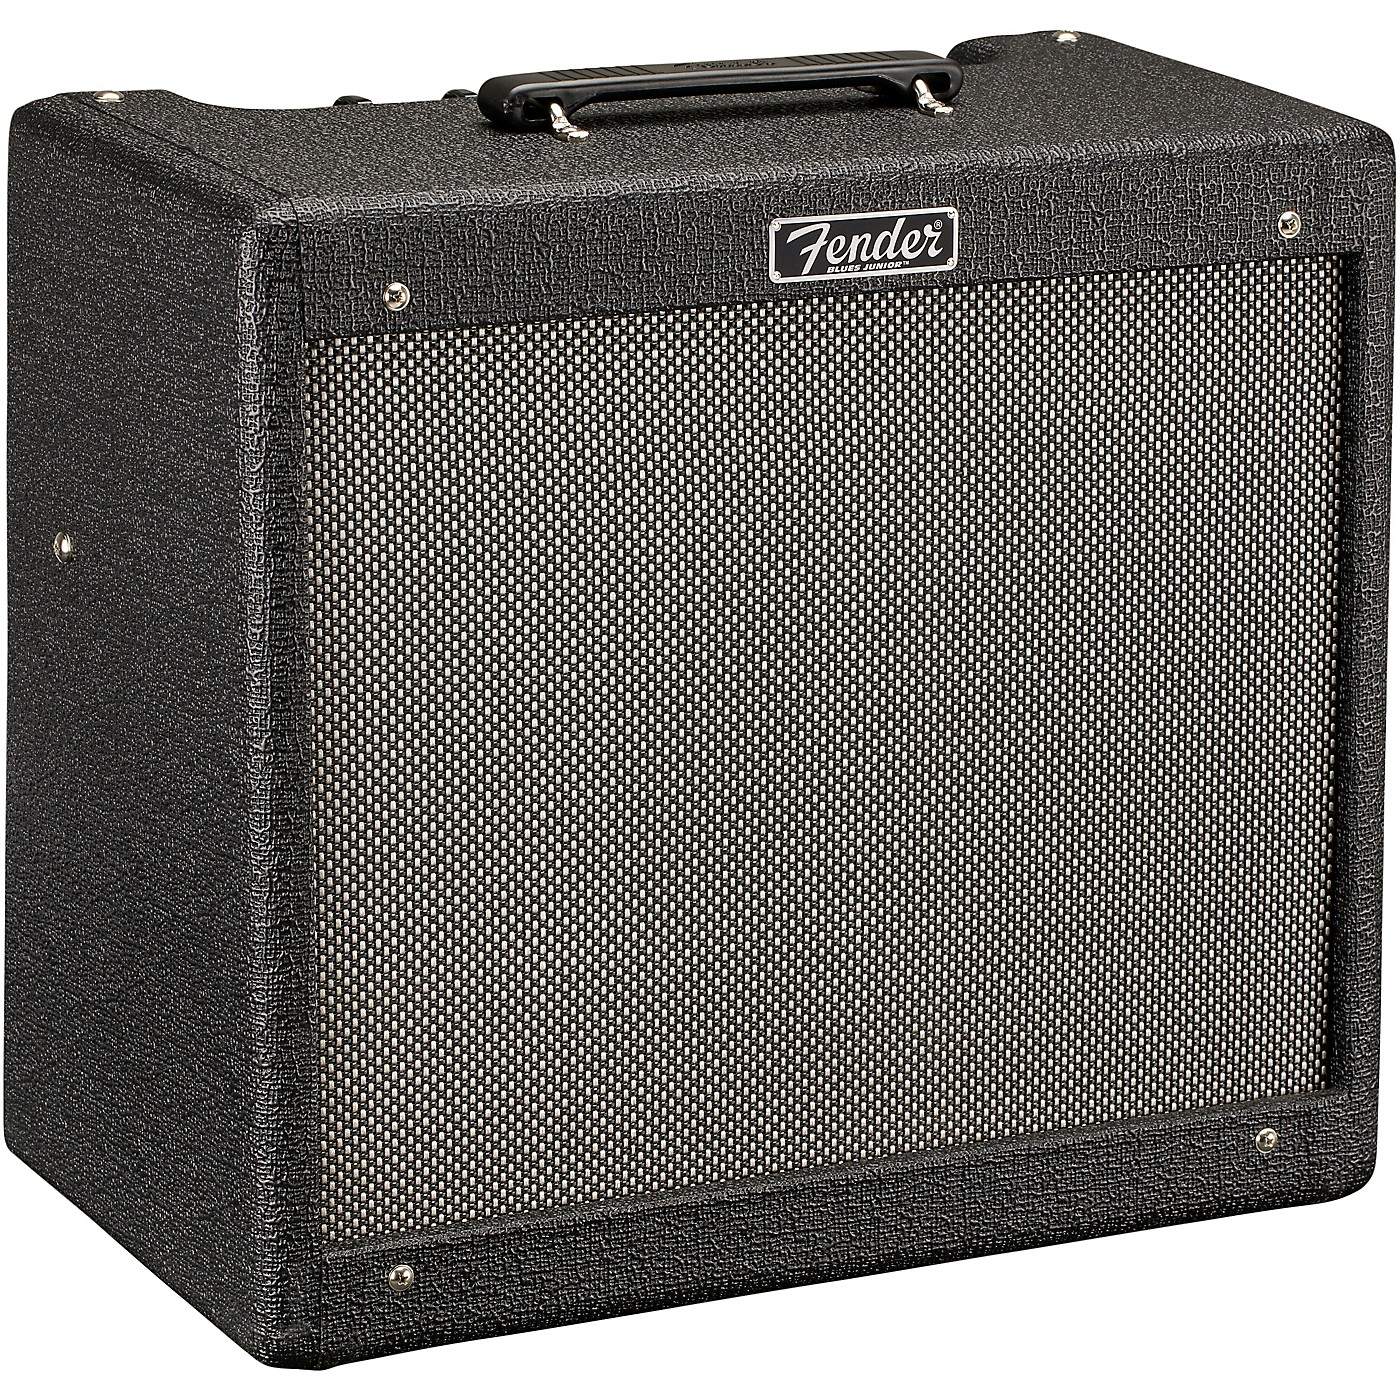 Fender Special-Edition Blues Junior IV Humboldt Hot Rod 15W 1x12 Tube Guitar Combo Amp thumbnail